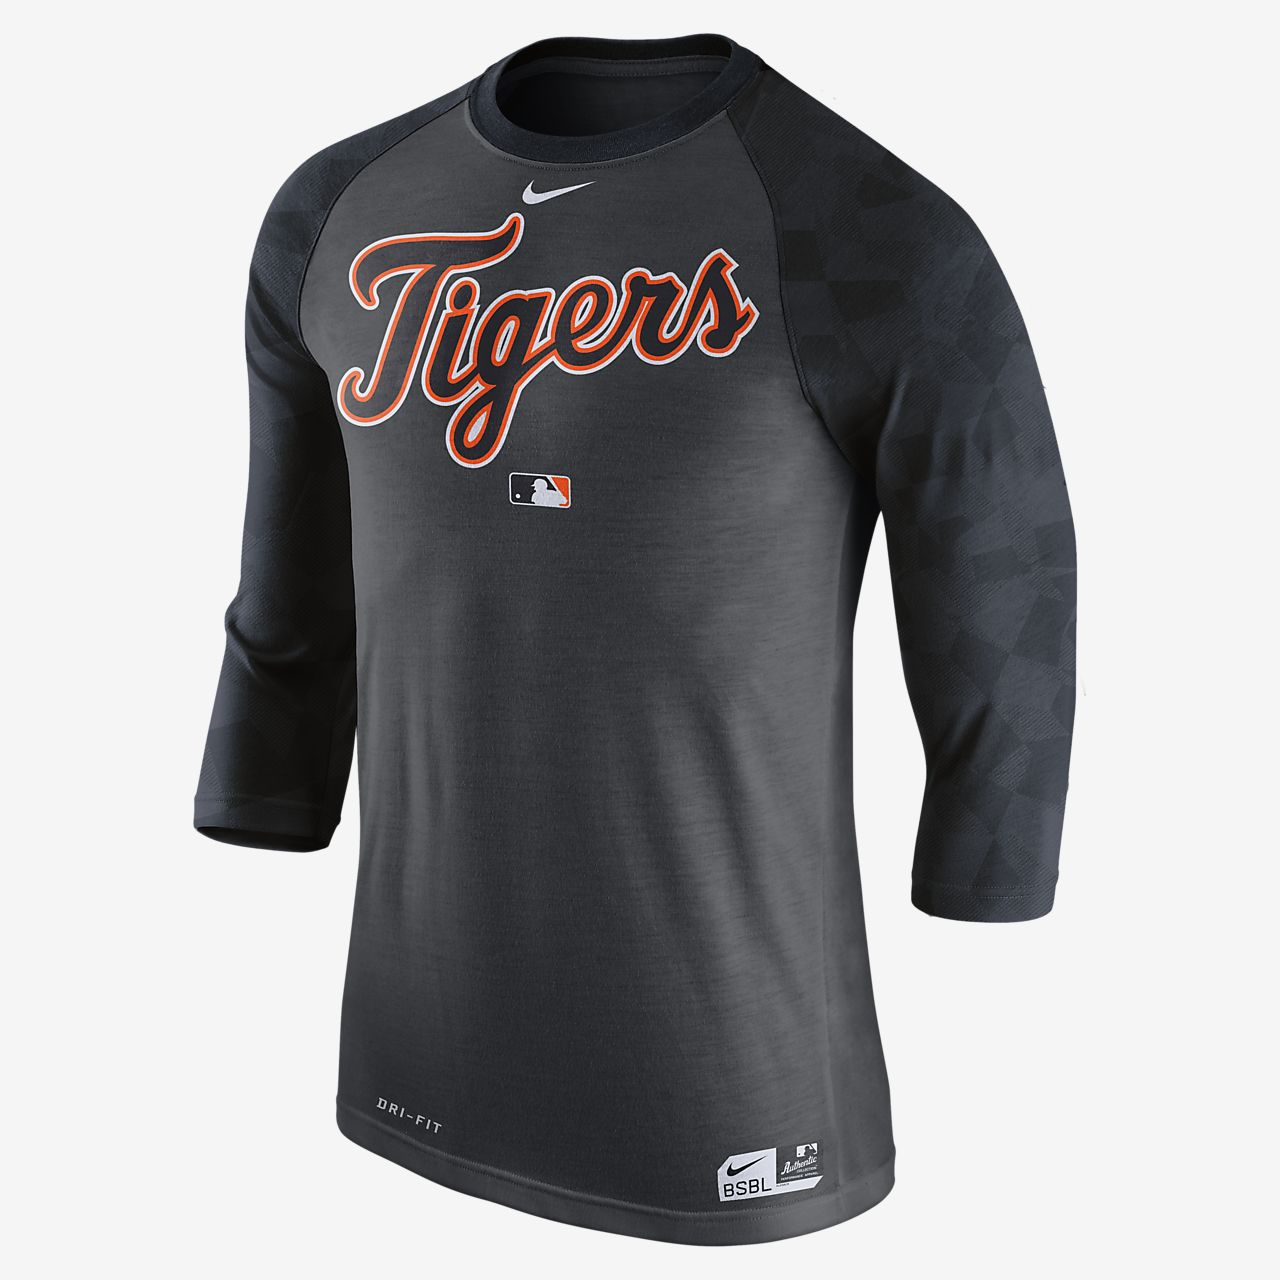 Nike Legend Raglan (MLB Tigers) Men's 3/4 Sleeve Top Black